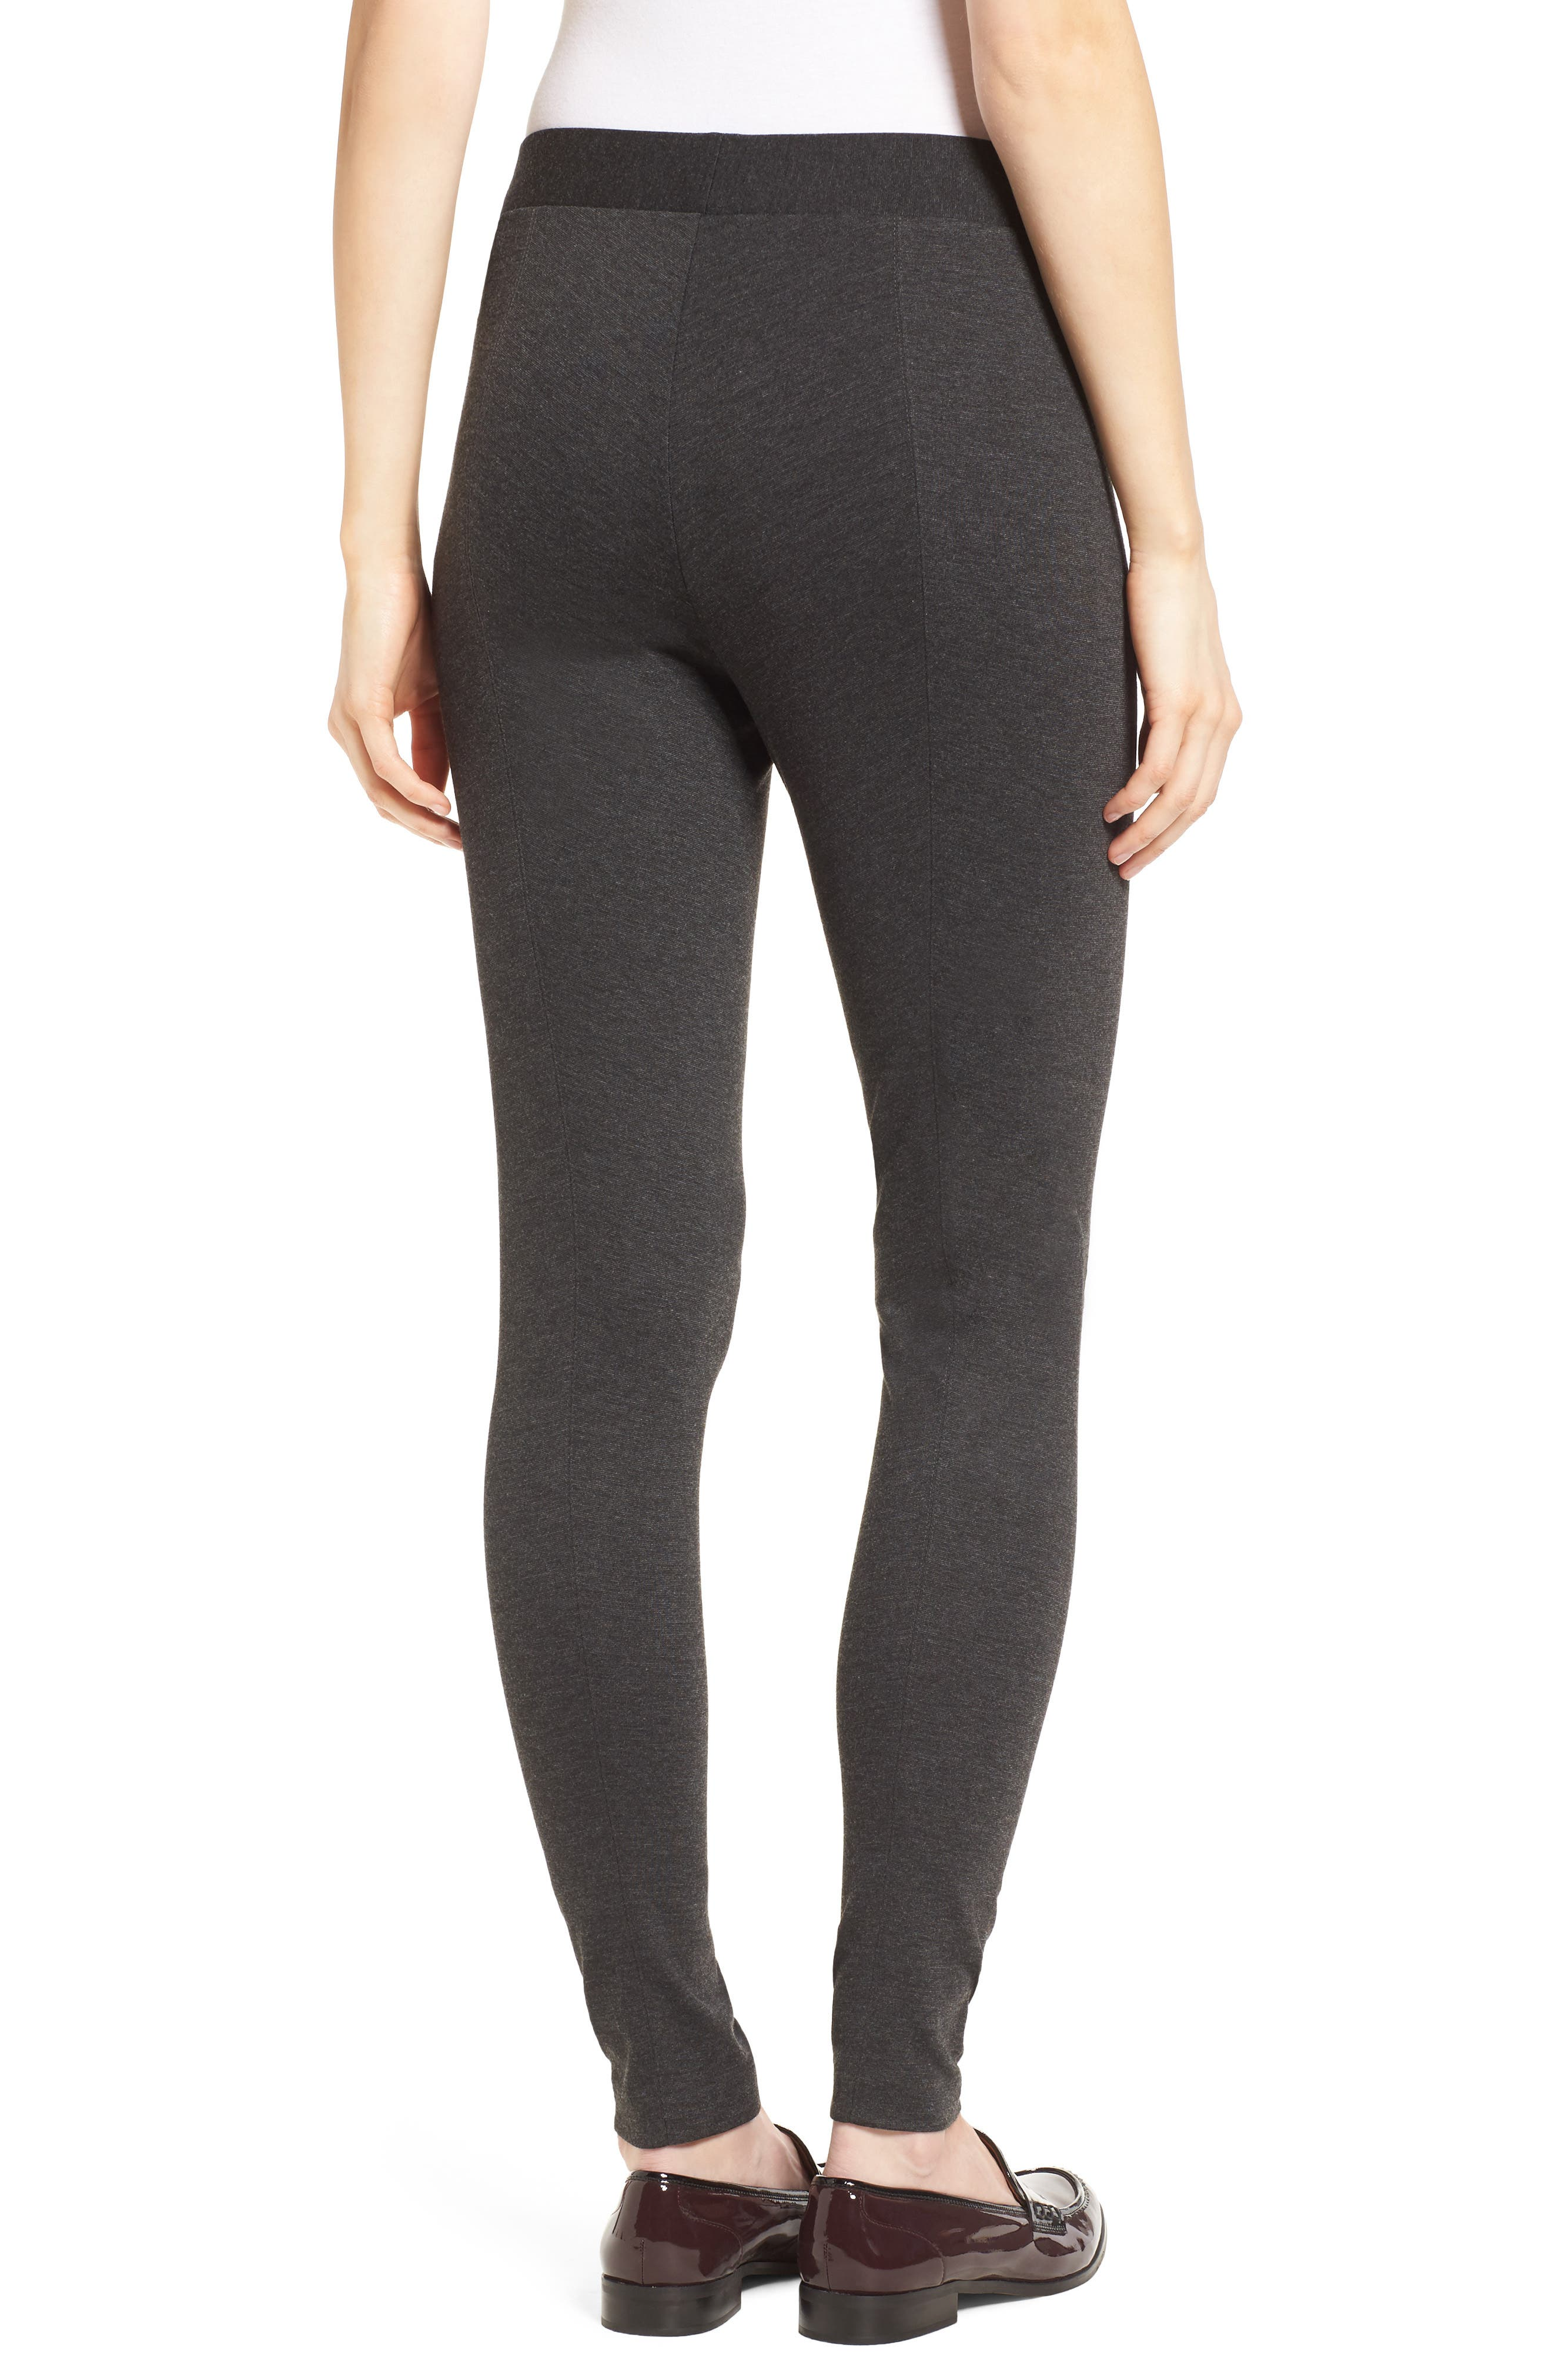 Two by Vince Camuto Seamed Back Leggings,                             Alternate thumbnail 2, color,                             DARK HEATHER GREY